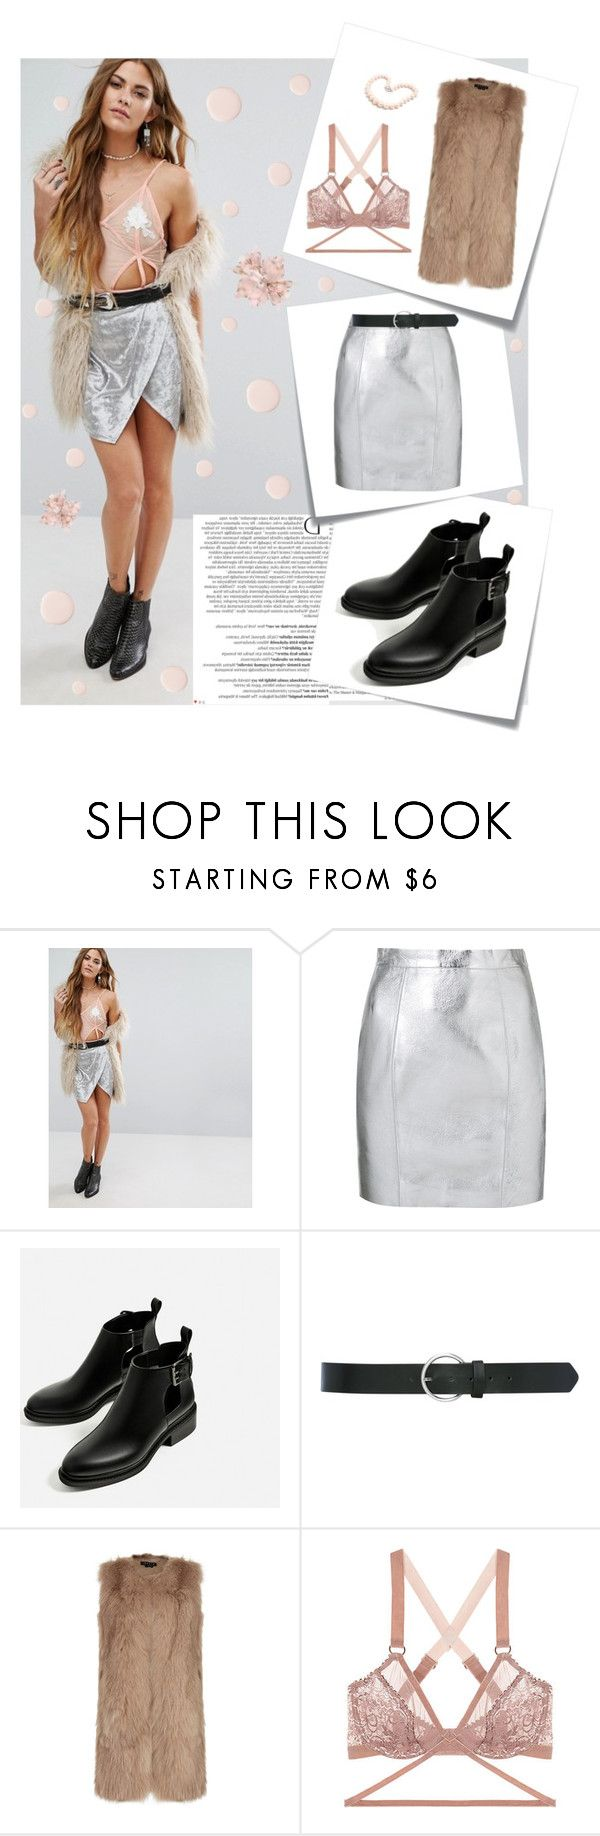 """""""Summer metalic skirt"""" by unii-corn ❤ liked on Polyvore featuring Young Bohemians, Balmain, Post-It, Yves Saint Laurent, M&Co, Theory, Lonely and Hiho Silver"""